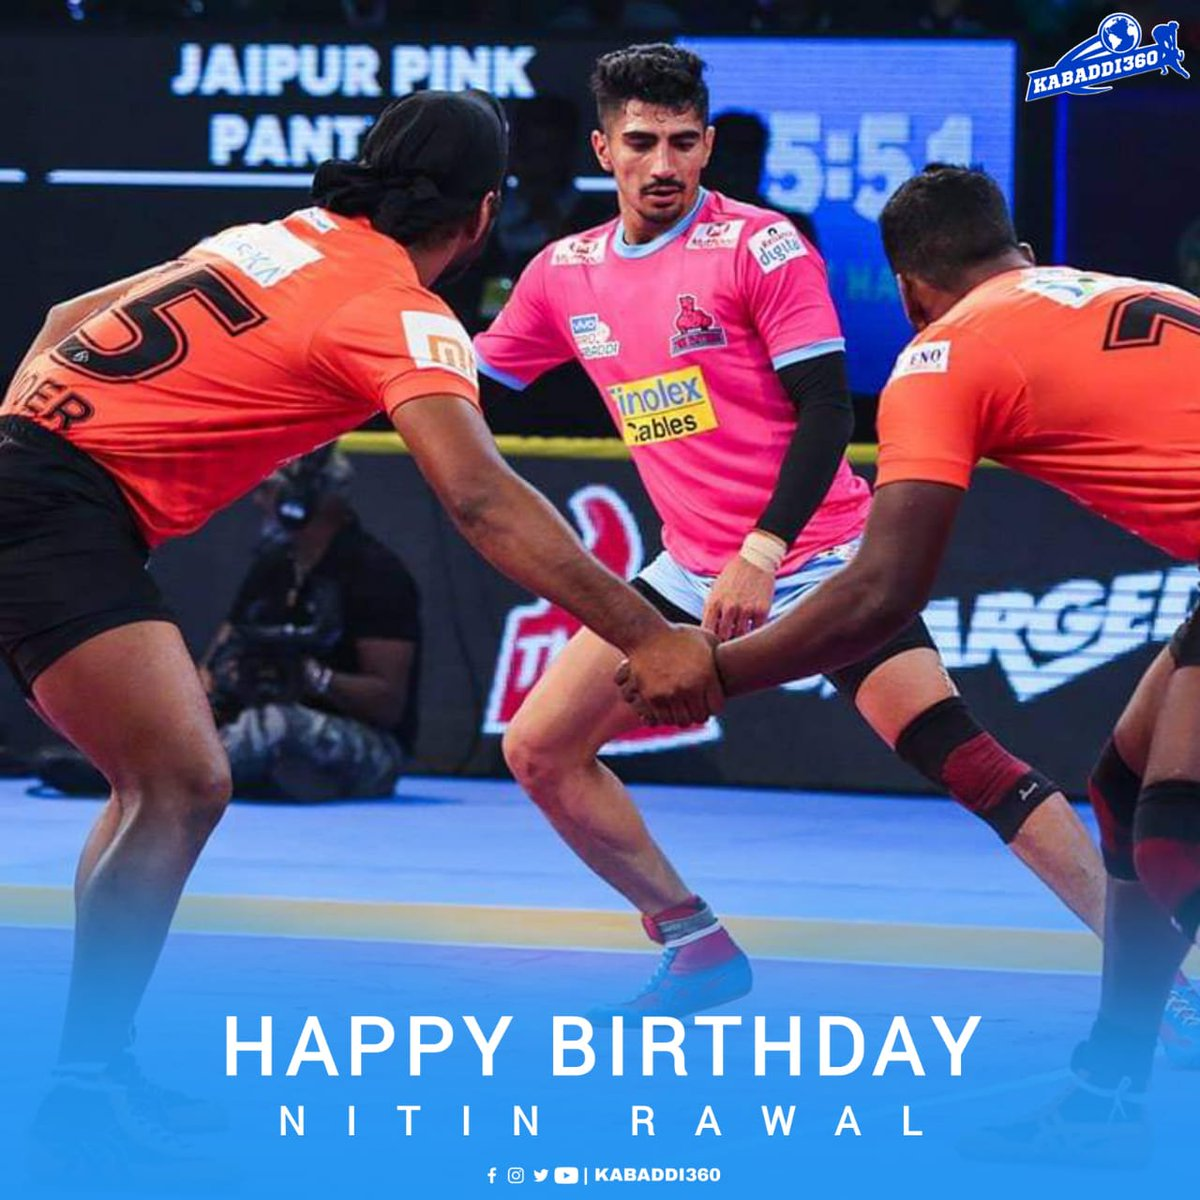 Jaipur Pink Panthers' top all rounder of Season 5 with 85 points, happy birthday Nitin Rawal 🎂  #NitinRawal #HappyBirthday #Kabaddi360